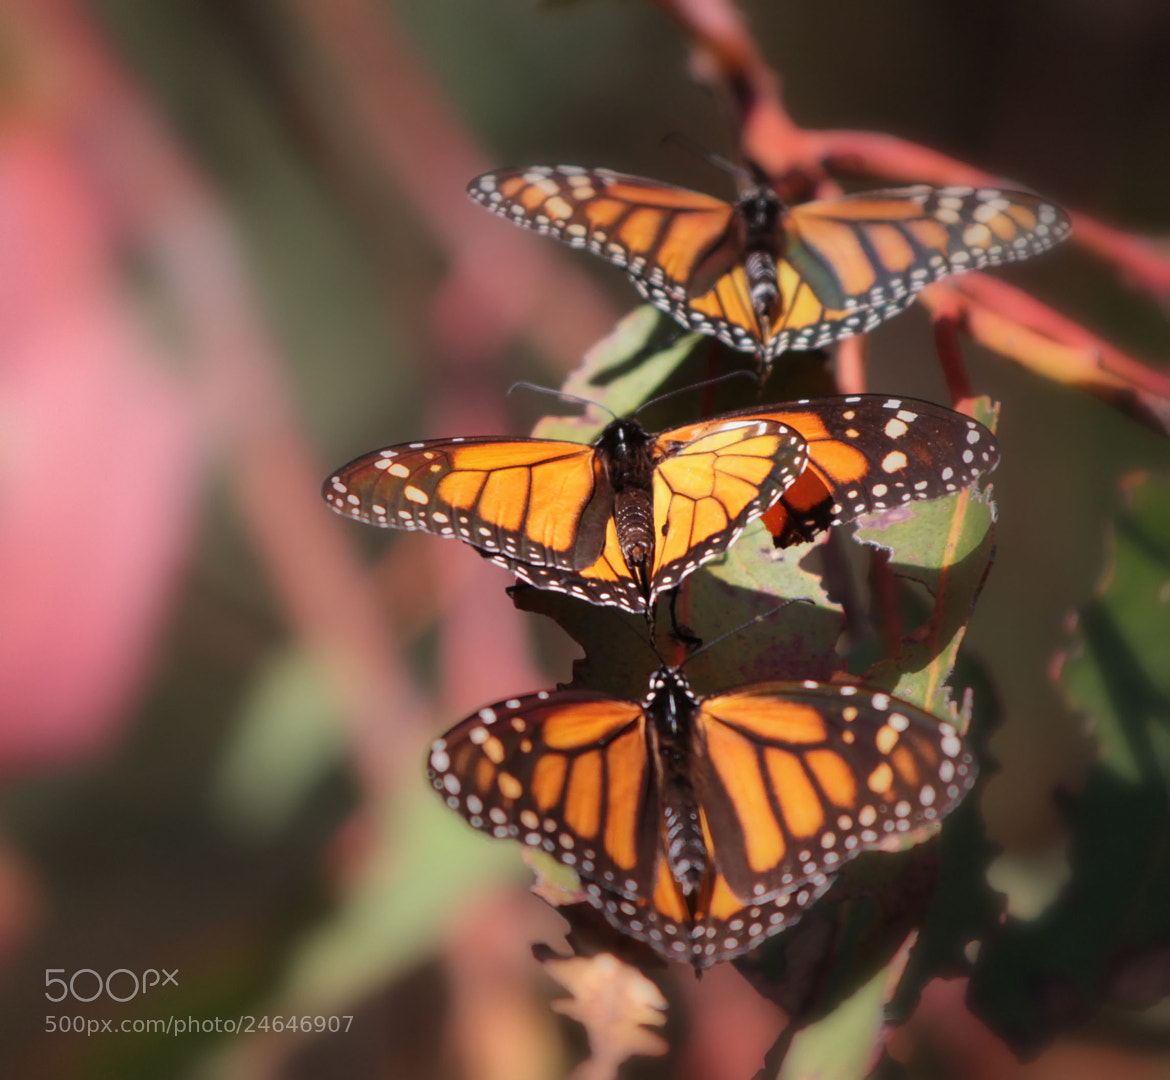 Photograph Monarch formation by Todd Livermore on 500px